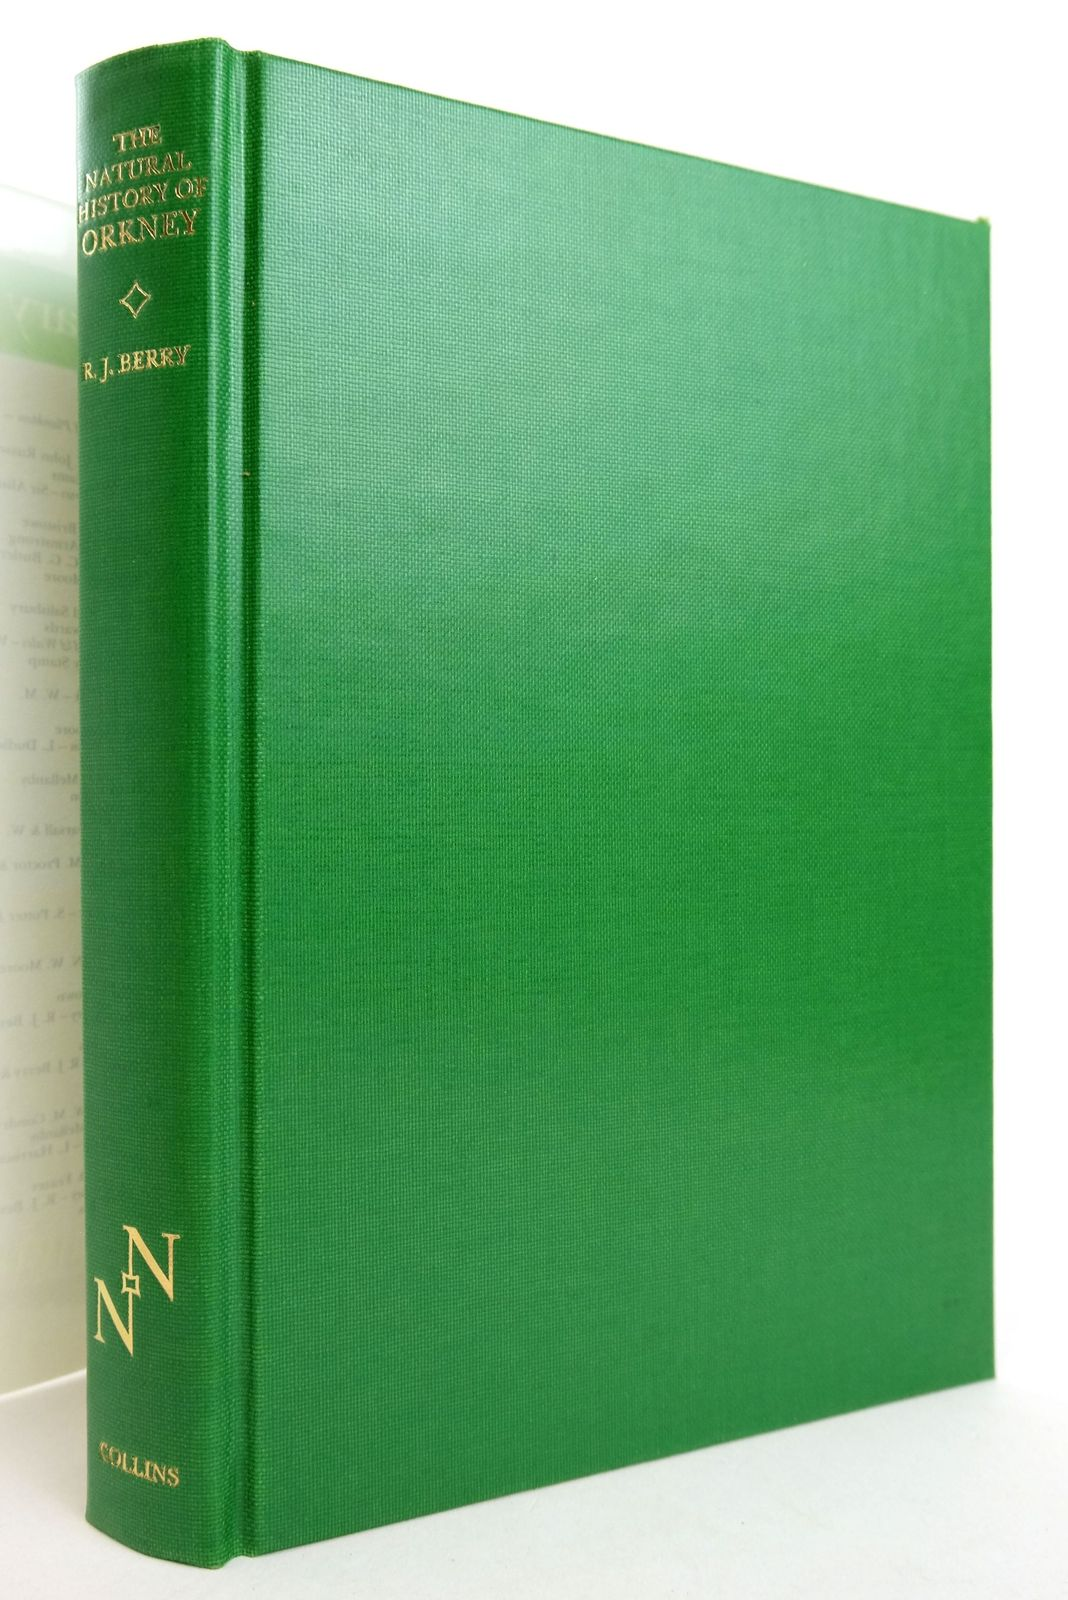 Photo of THE NATURAL HISTORY OF ORKNEY (NN 70) written by Berry, R.J. published by Collins (STOCK CODE: 1819138)  for sale by Stella & Rose's Books